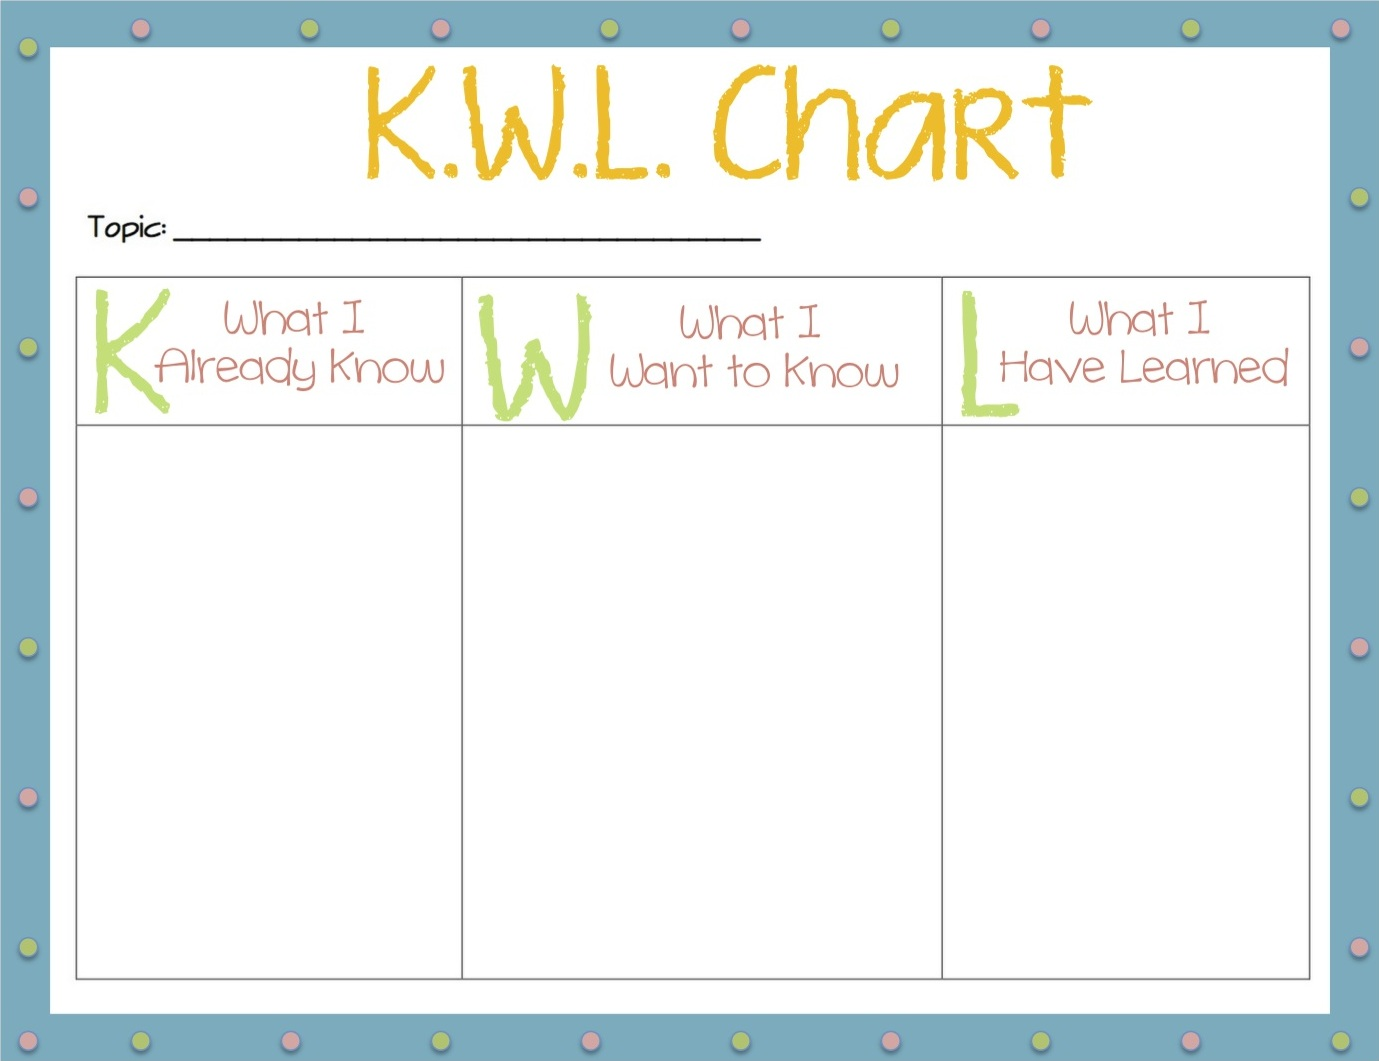 Worksheets What Is Kwl Chart? spring13ell kwl external image classroomkwlchart jpg